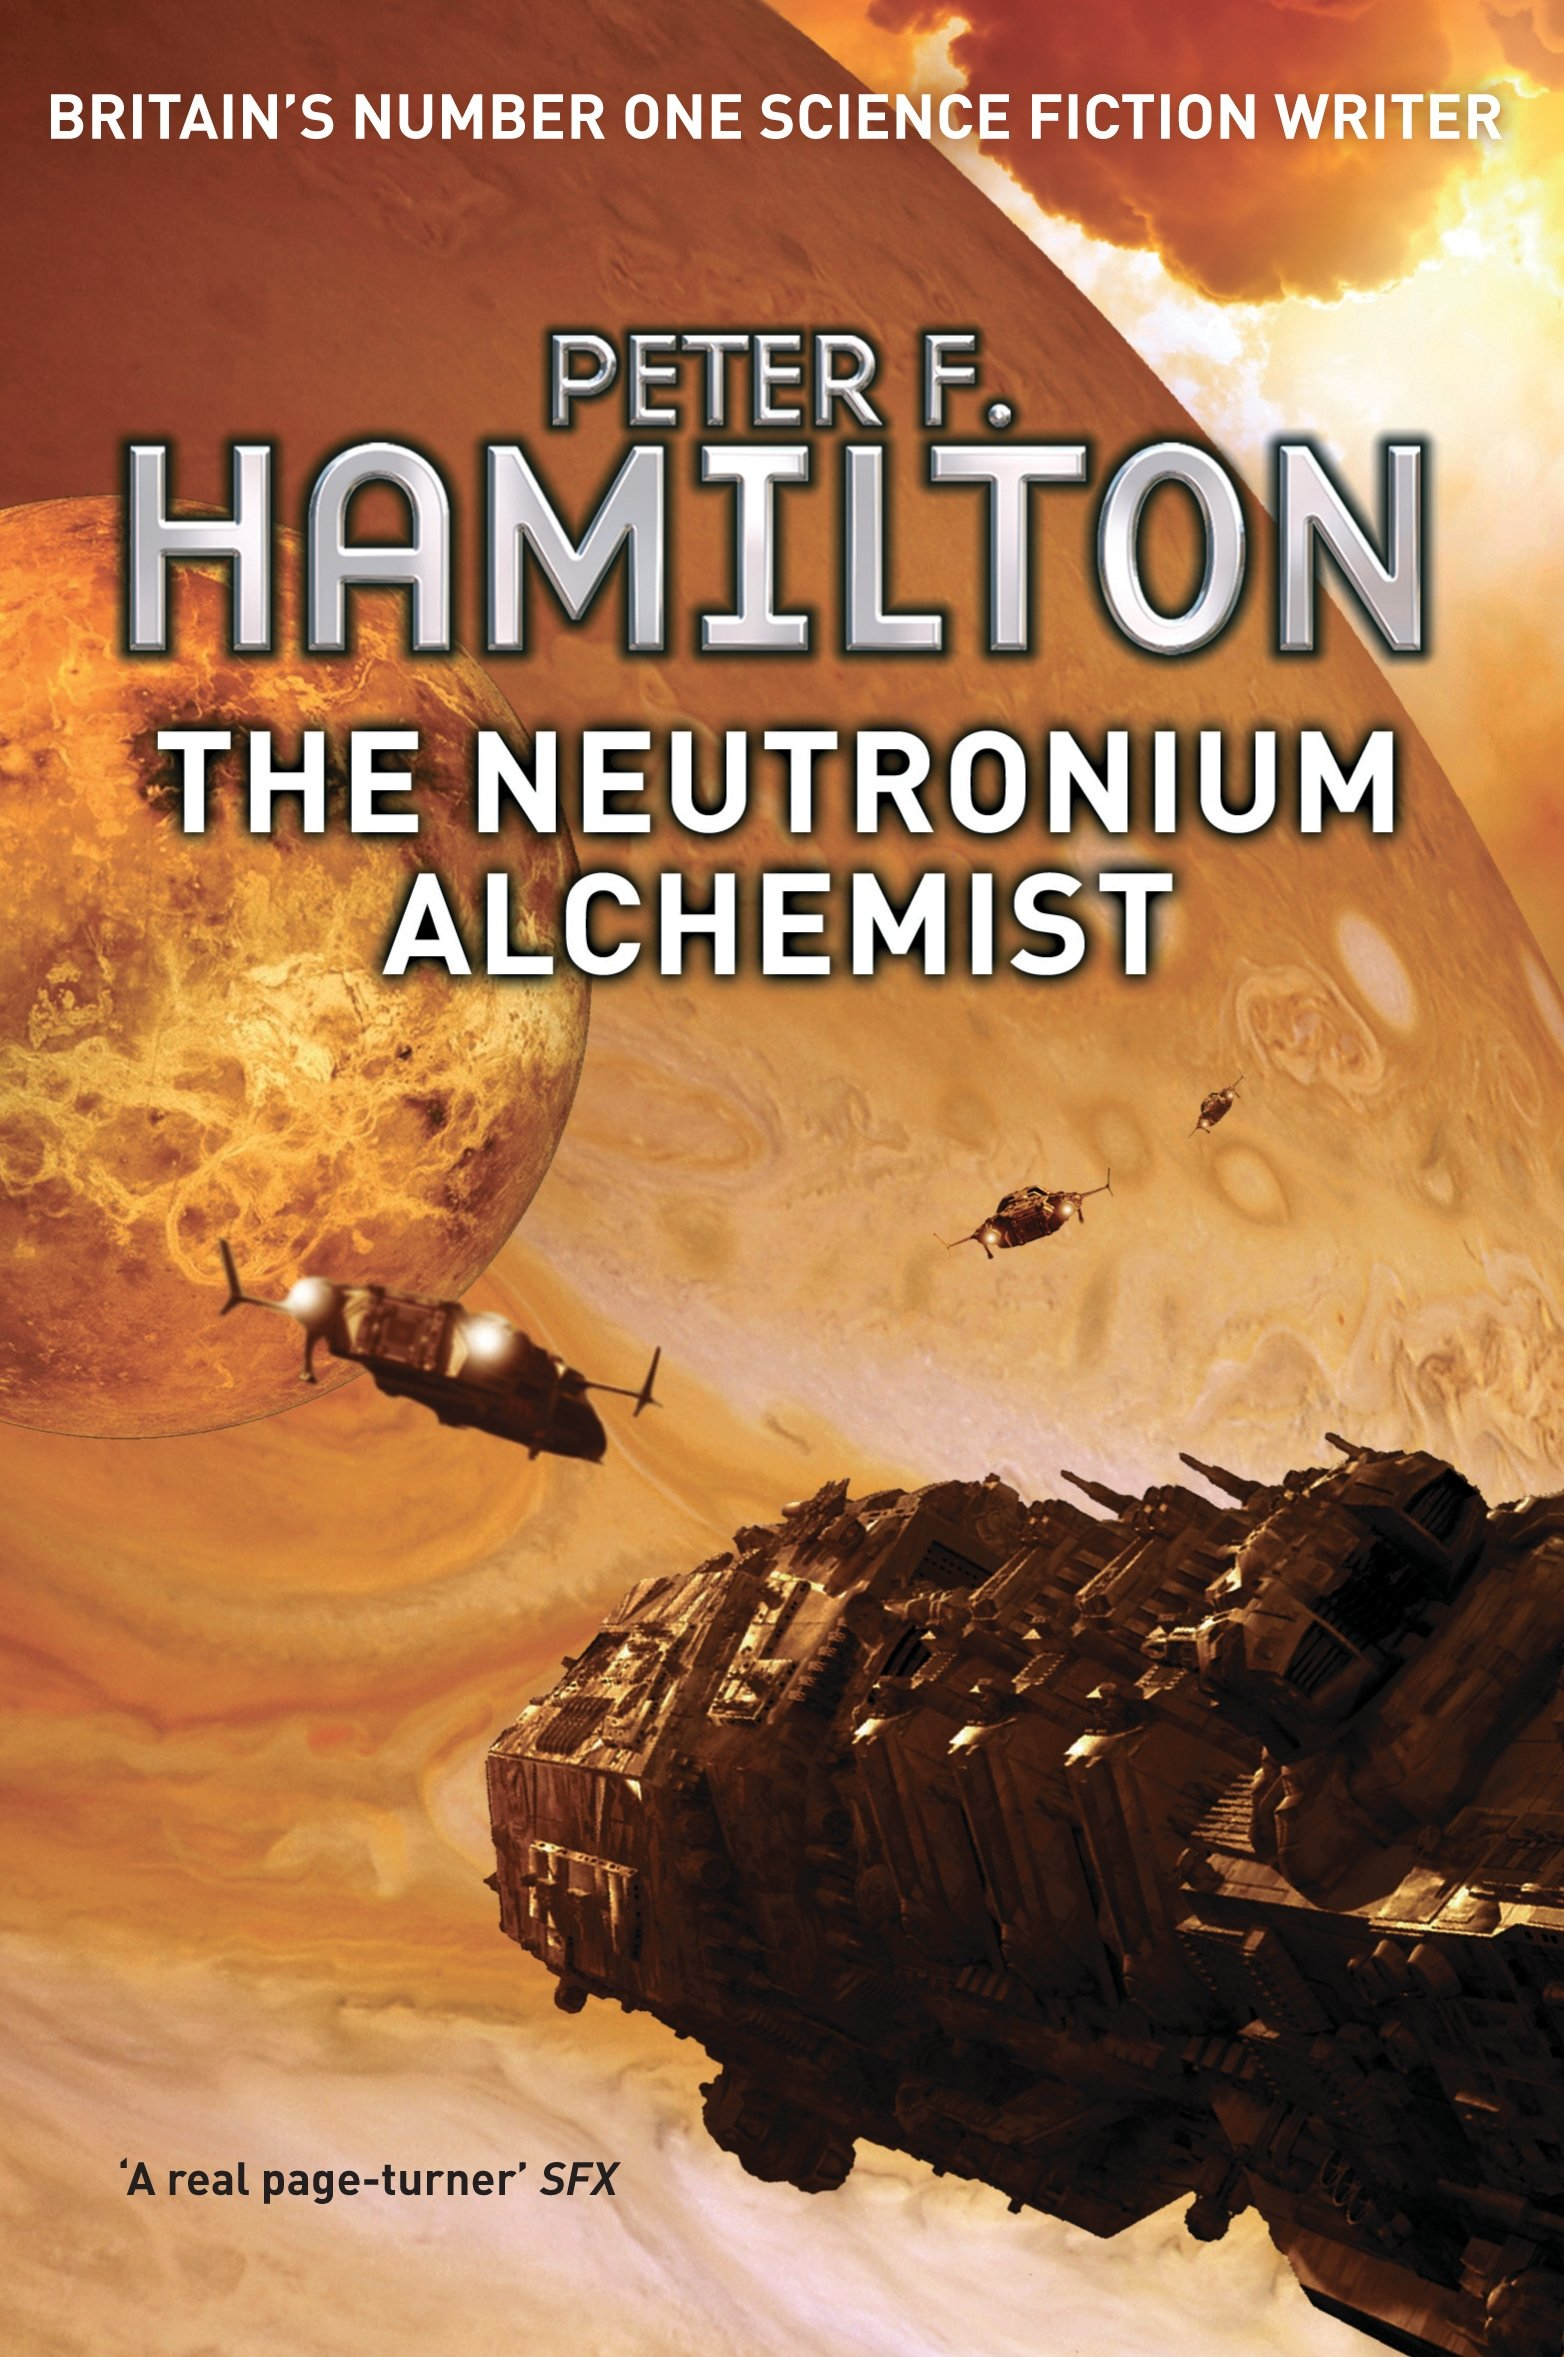 the neutronium alchemist the night s dawn trilogy amazon the neutronium alchemist 2 3 the night s dawn trilogy amazon co uk peter f hamilton 9781447208587 books